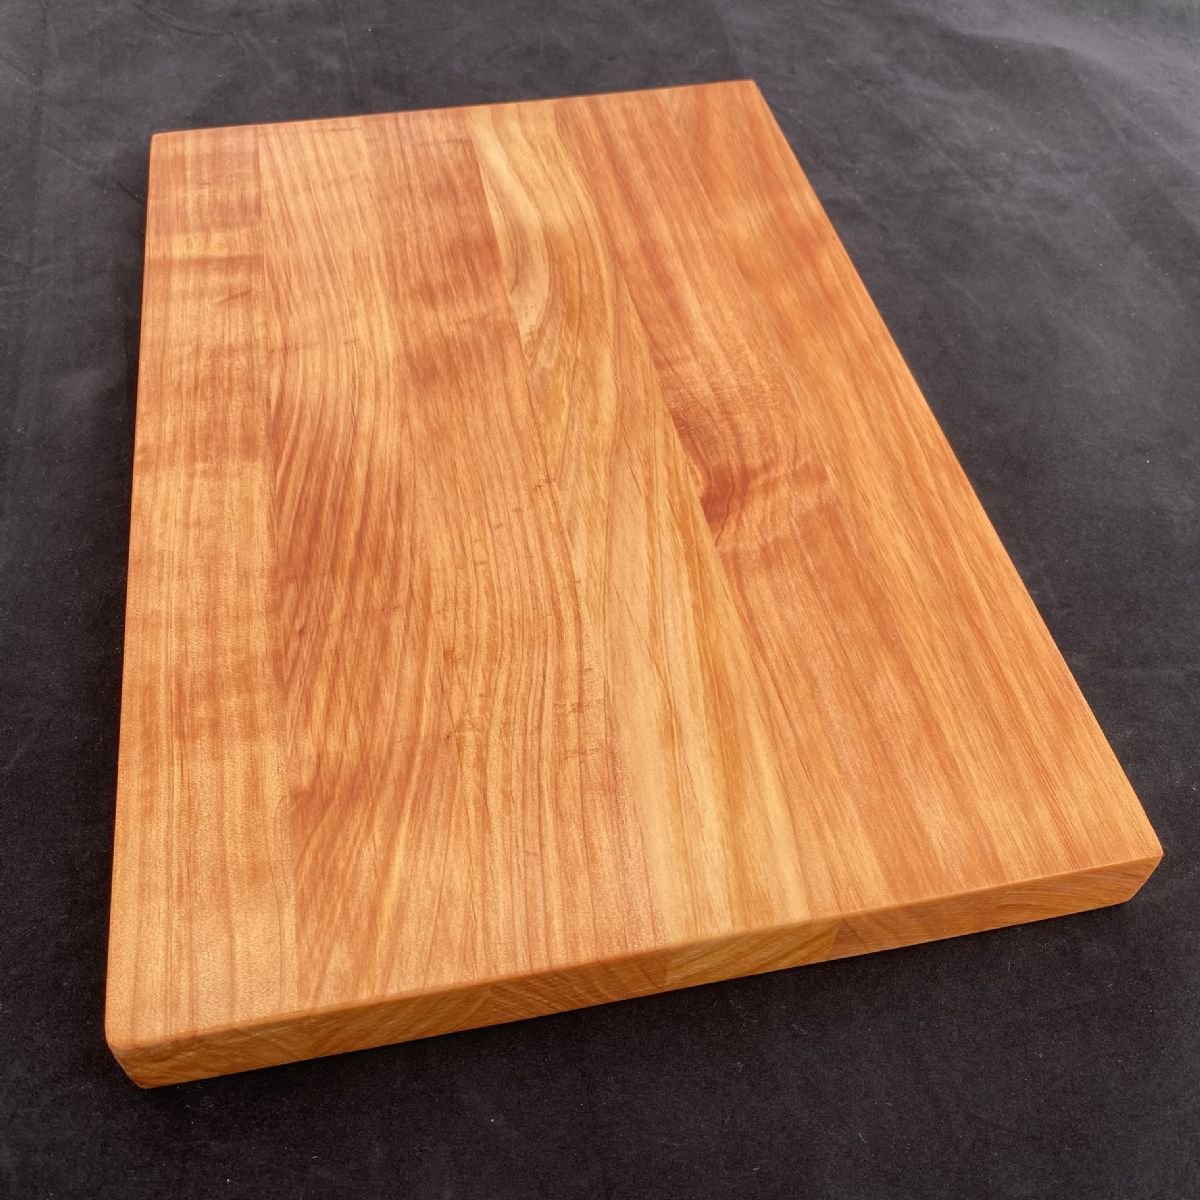 MACROCARPA BREAD BOARD: Large clear